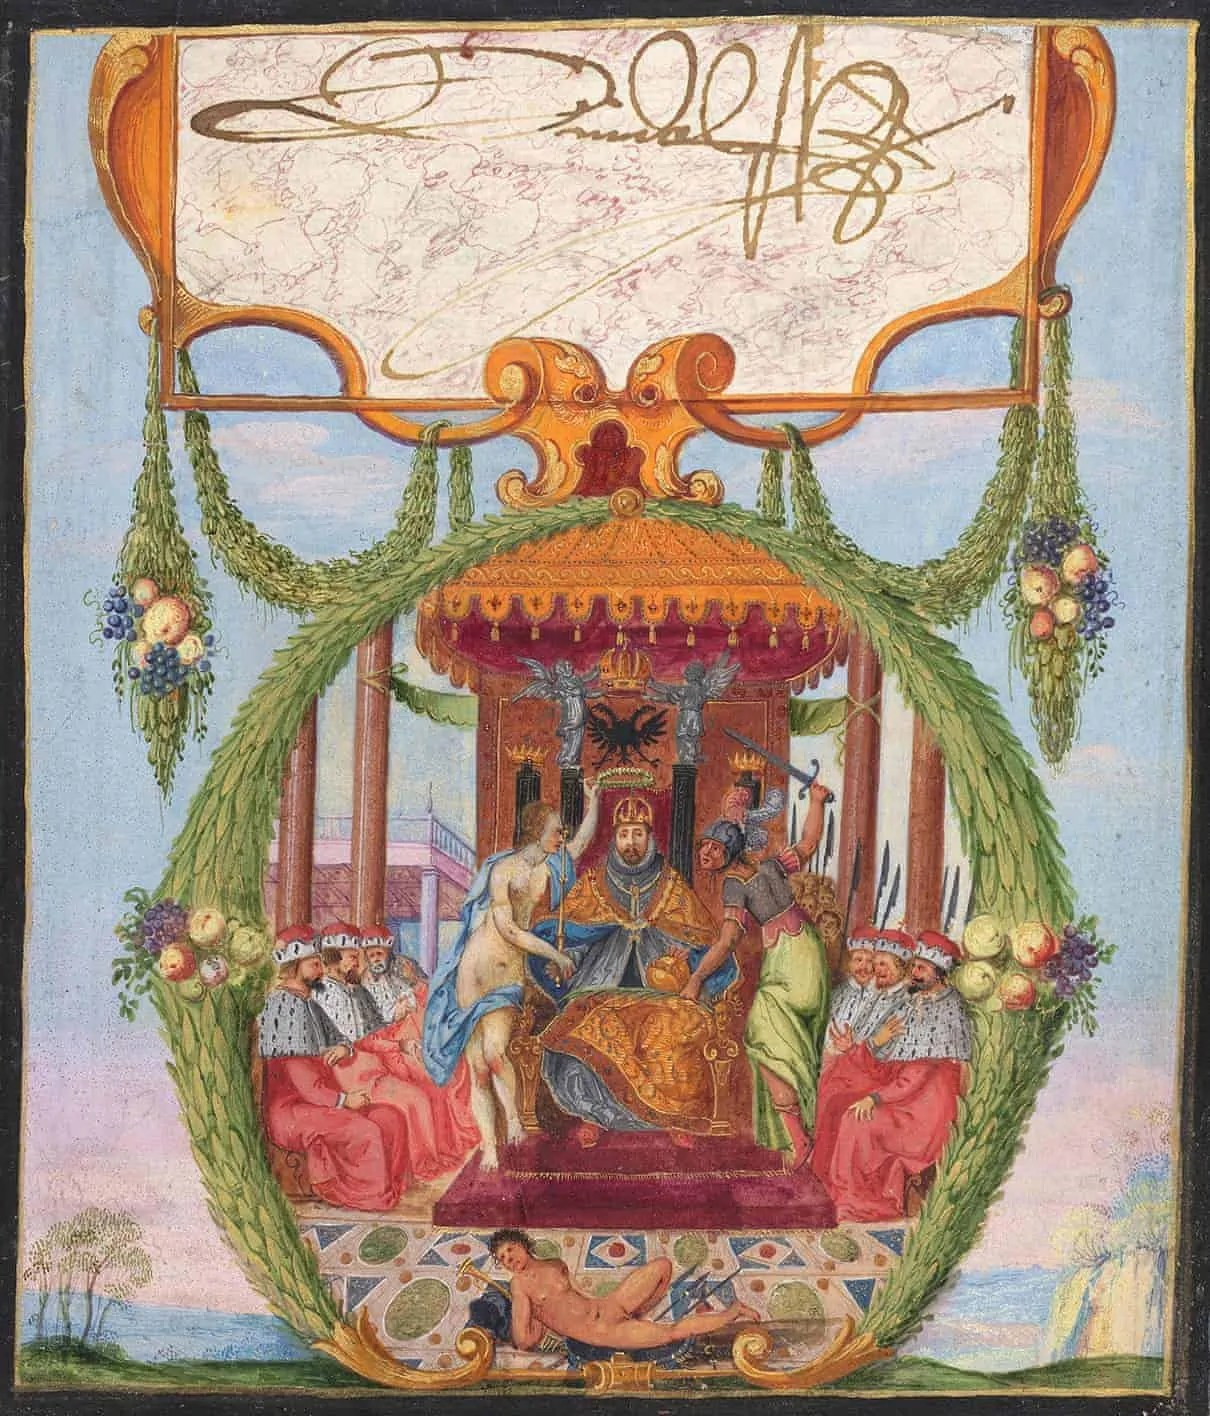 a decorative painting with the signature of Holy Roman Emperor Rudolf II